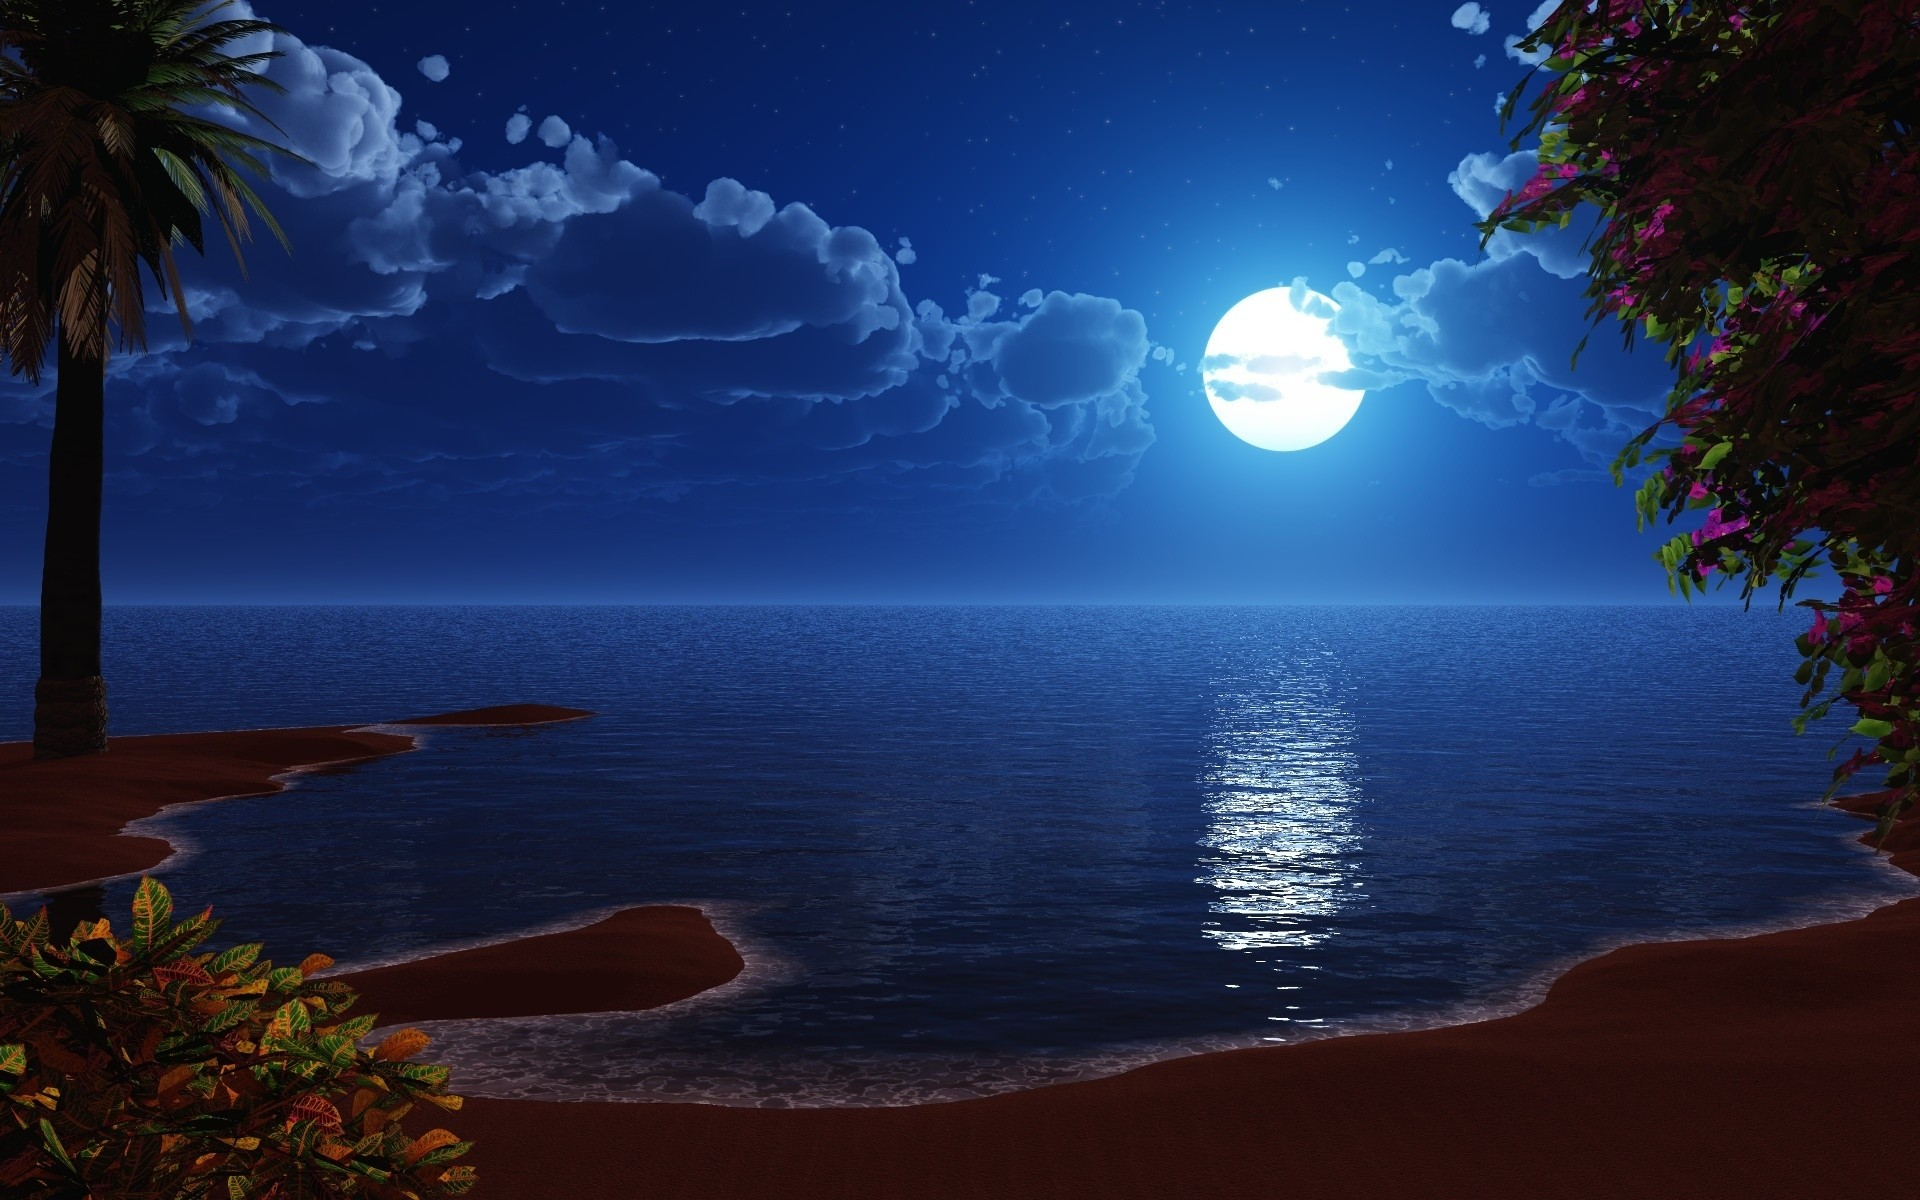 Cute Nature Photos Photo Gallery, Cute Nature Photos Pictures&nbsp27 Image  Gallery, Hd Wallpapers, · Beach At NightThe …